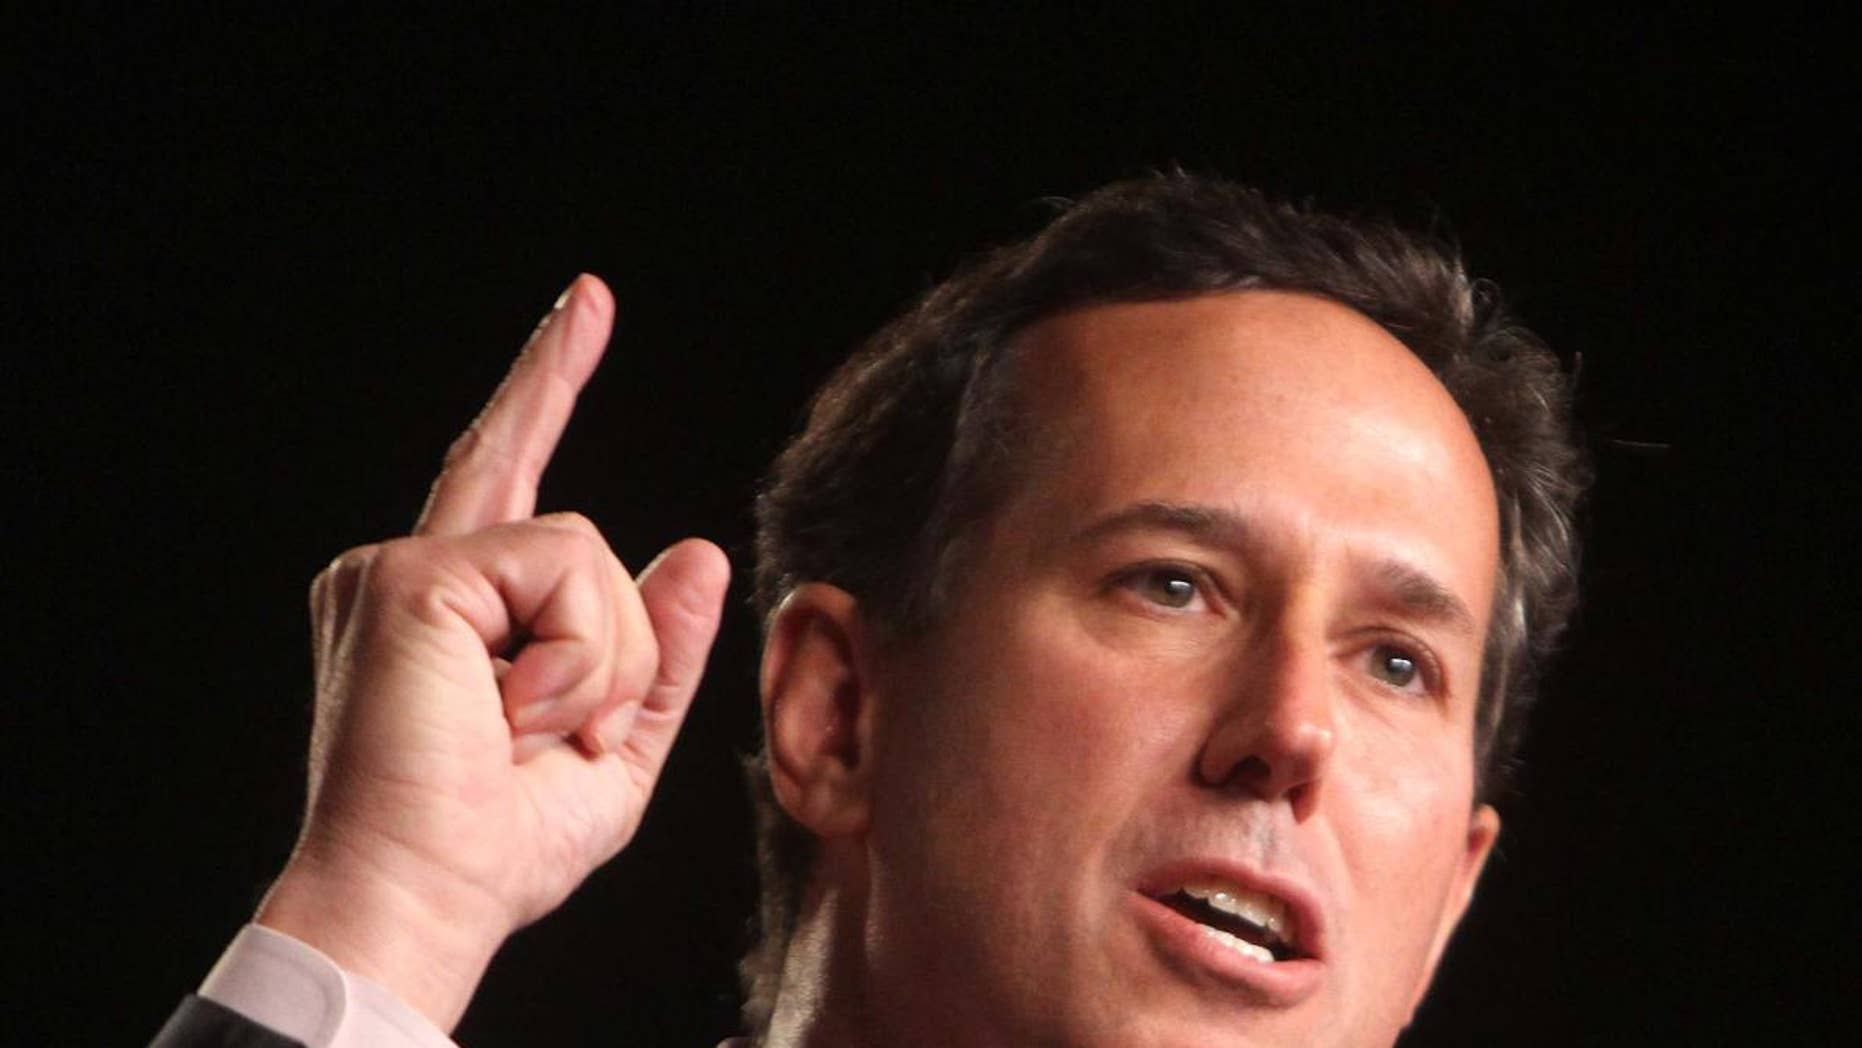 Republican presidential candidate Rick Santorum addresses the Conservative Political Action Conference (CPAC) at the Orange County Convention Center in Orlando, Fla., Friday, Sept. 23, 2011. (AP Photo/Joe Burbank, Pool)